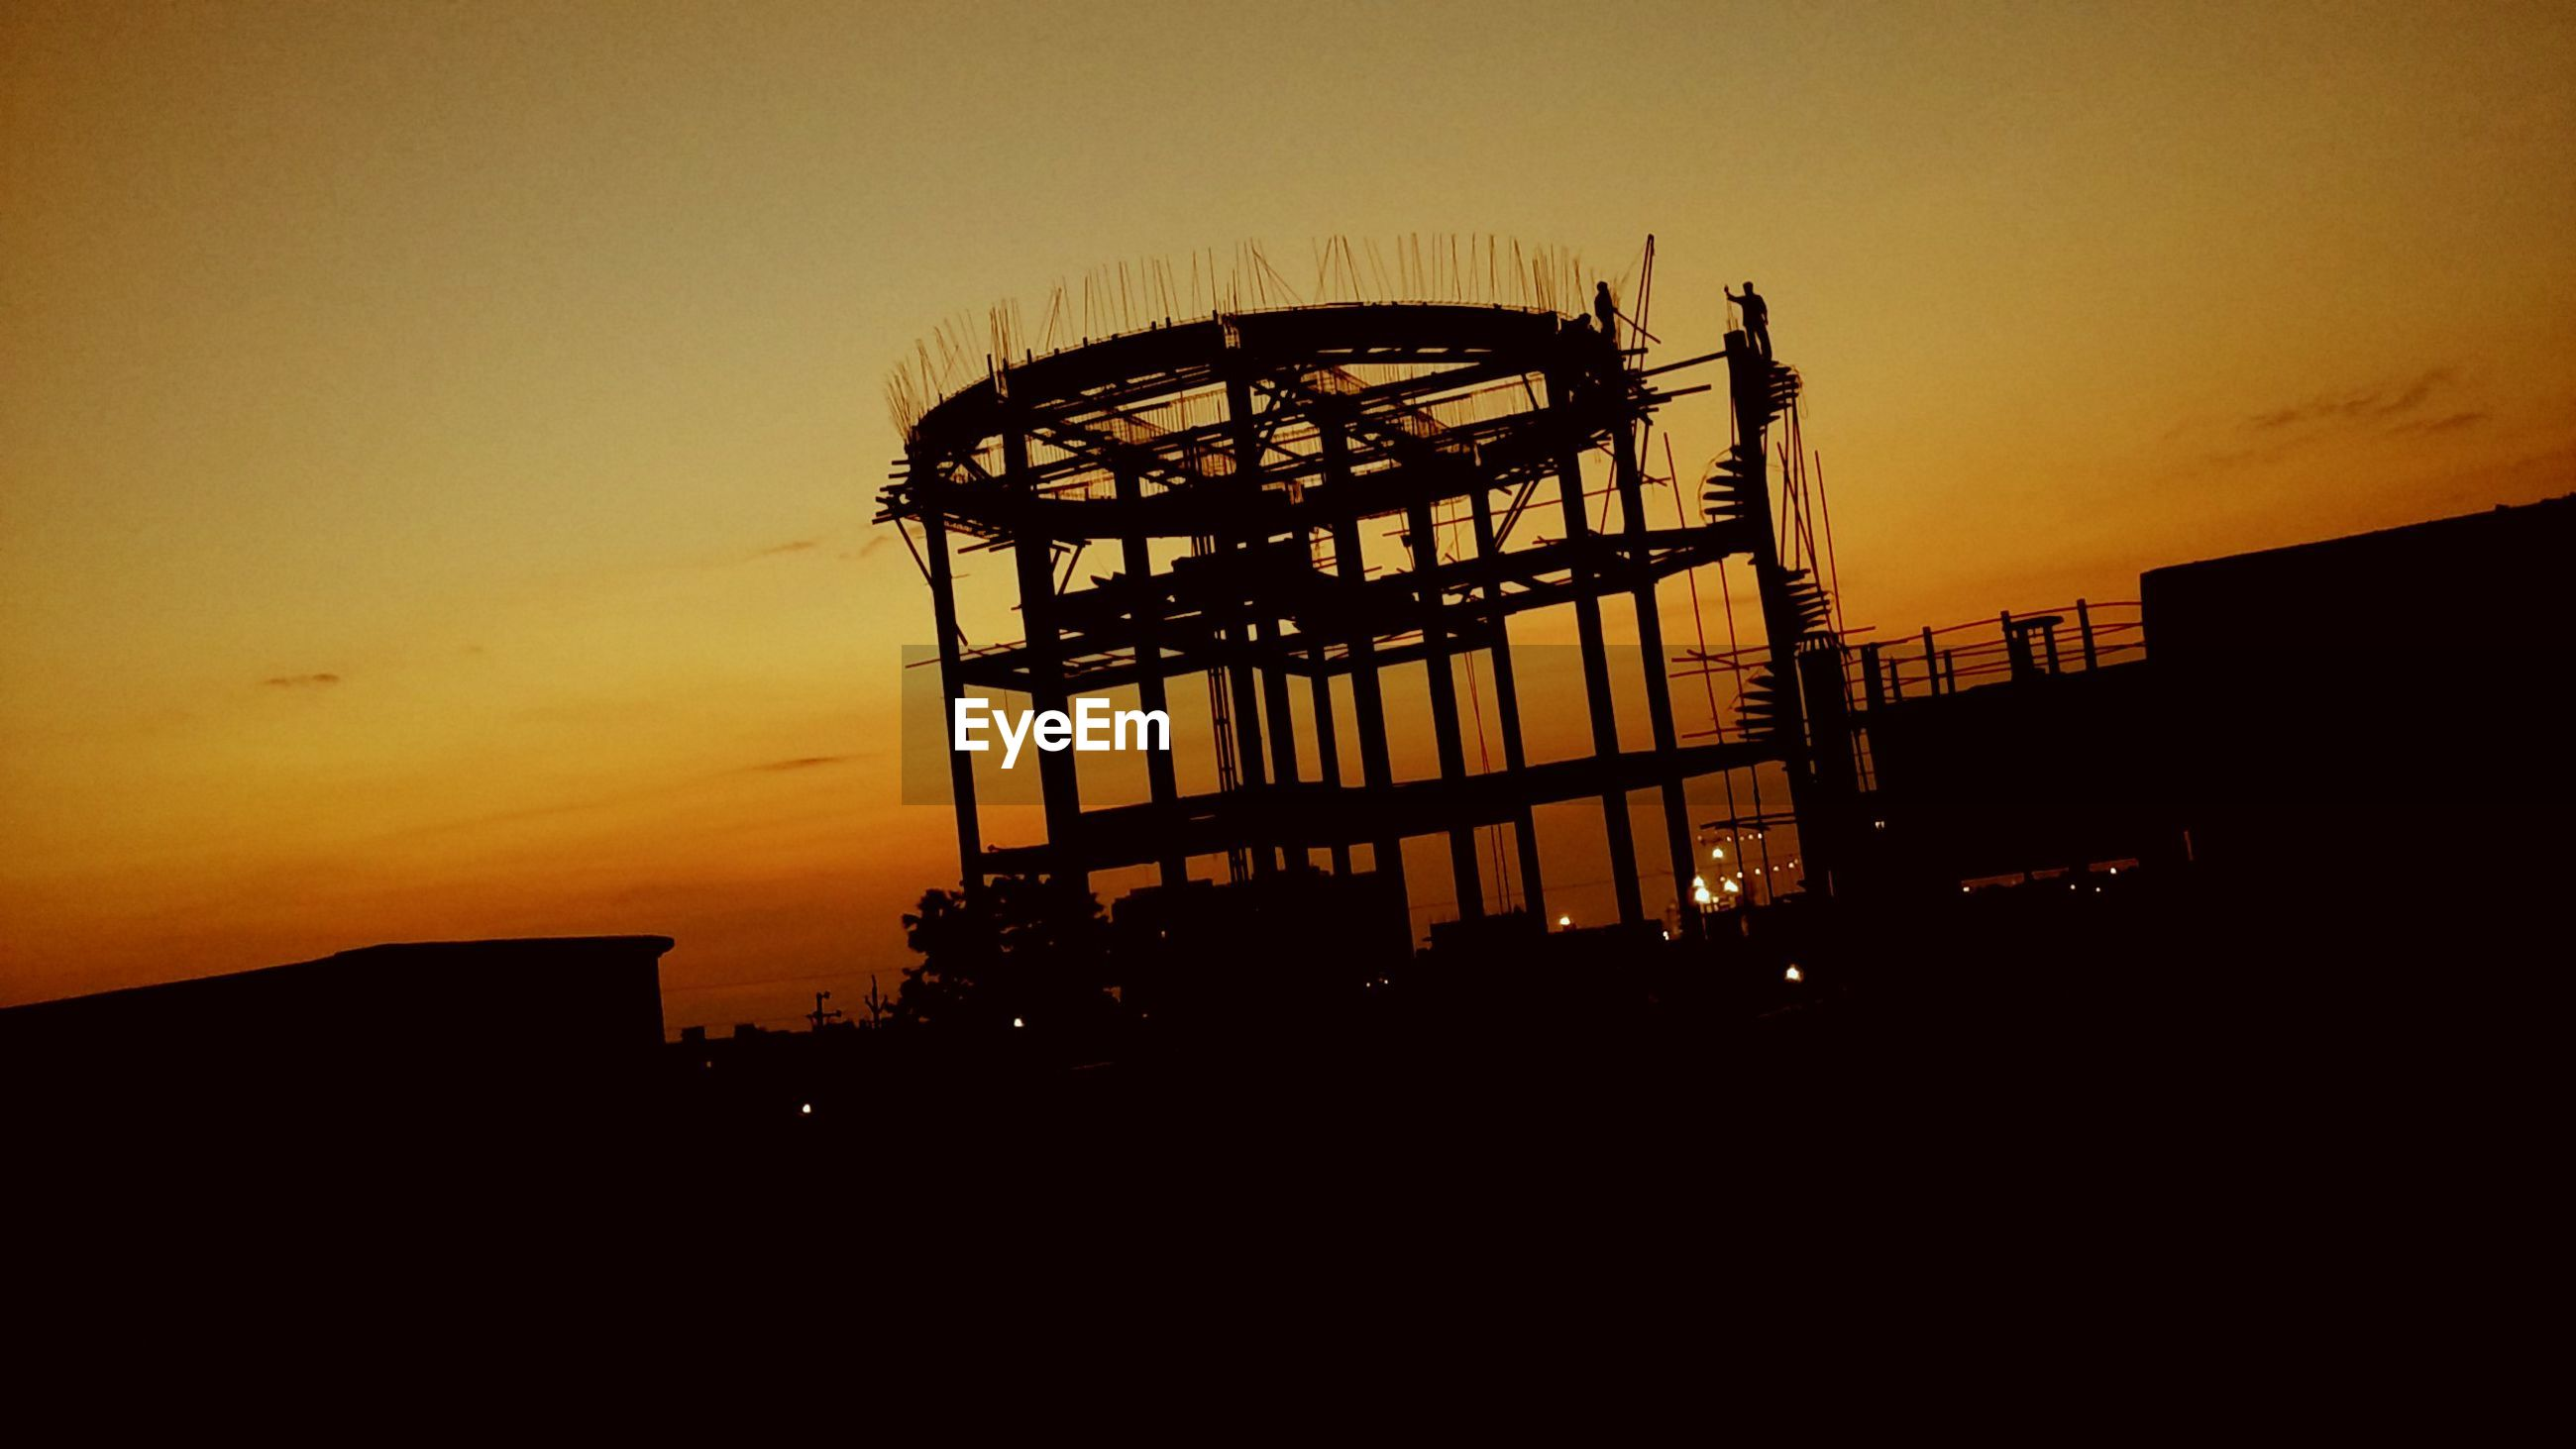 Silhouette workers at construction site against sky during sunset